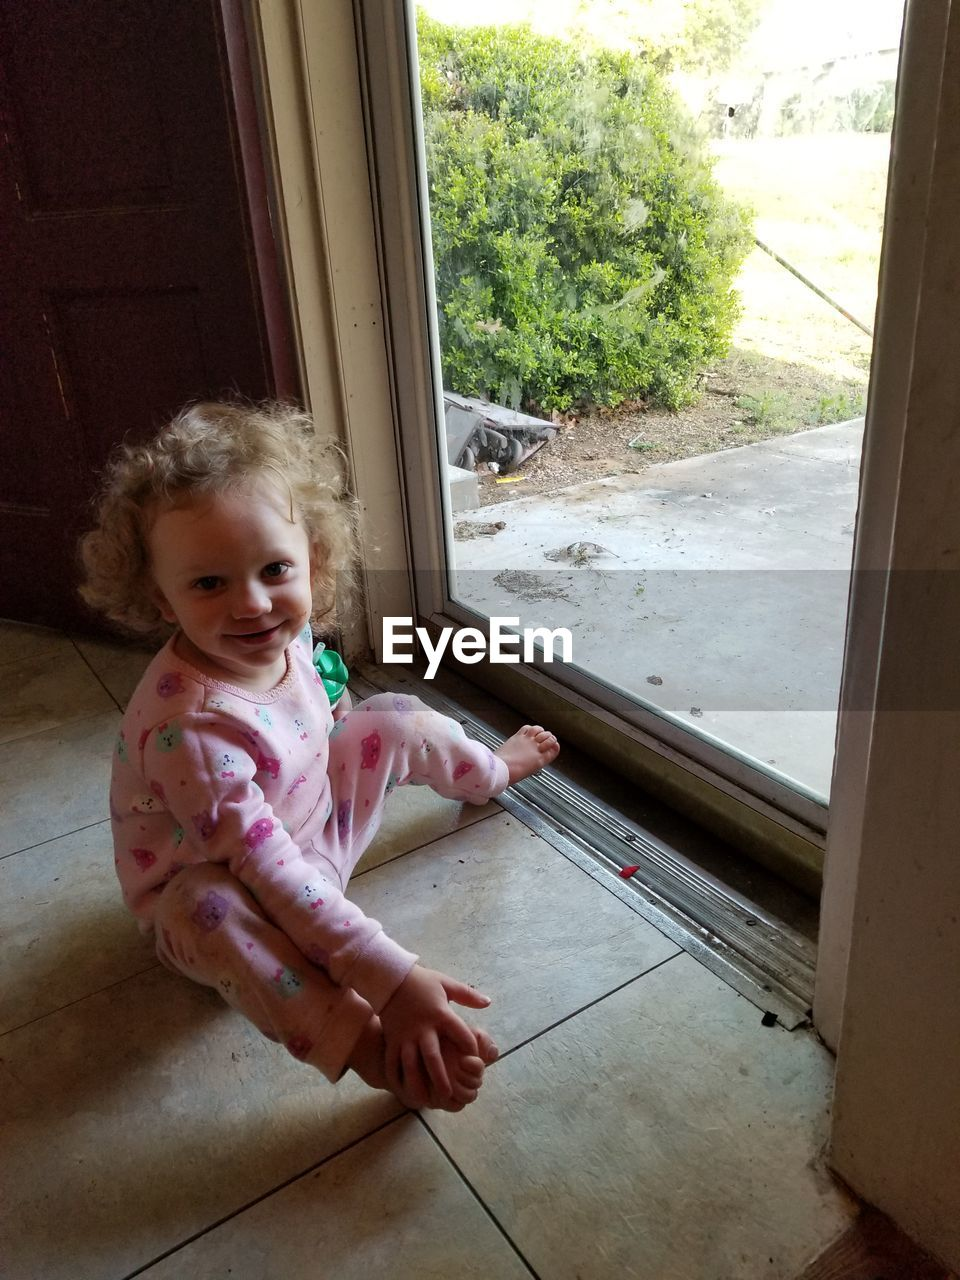 childhood, child, one person, window, indoors, real people, full length, home interior, day, innocence, young, glass - material, baby, toddler, door, entrance, girls, looking, flooring